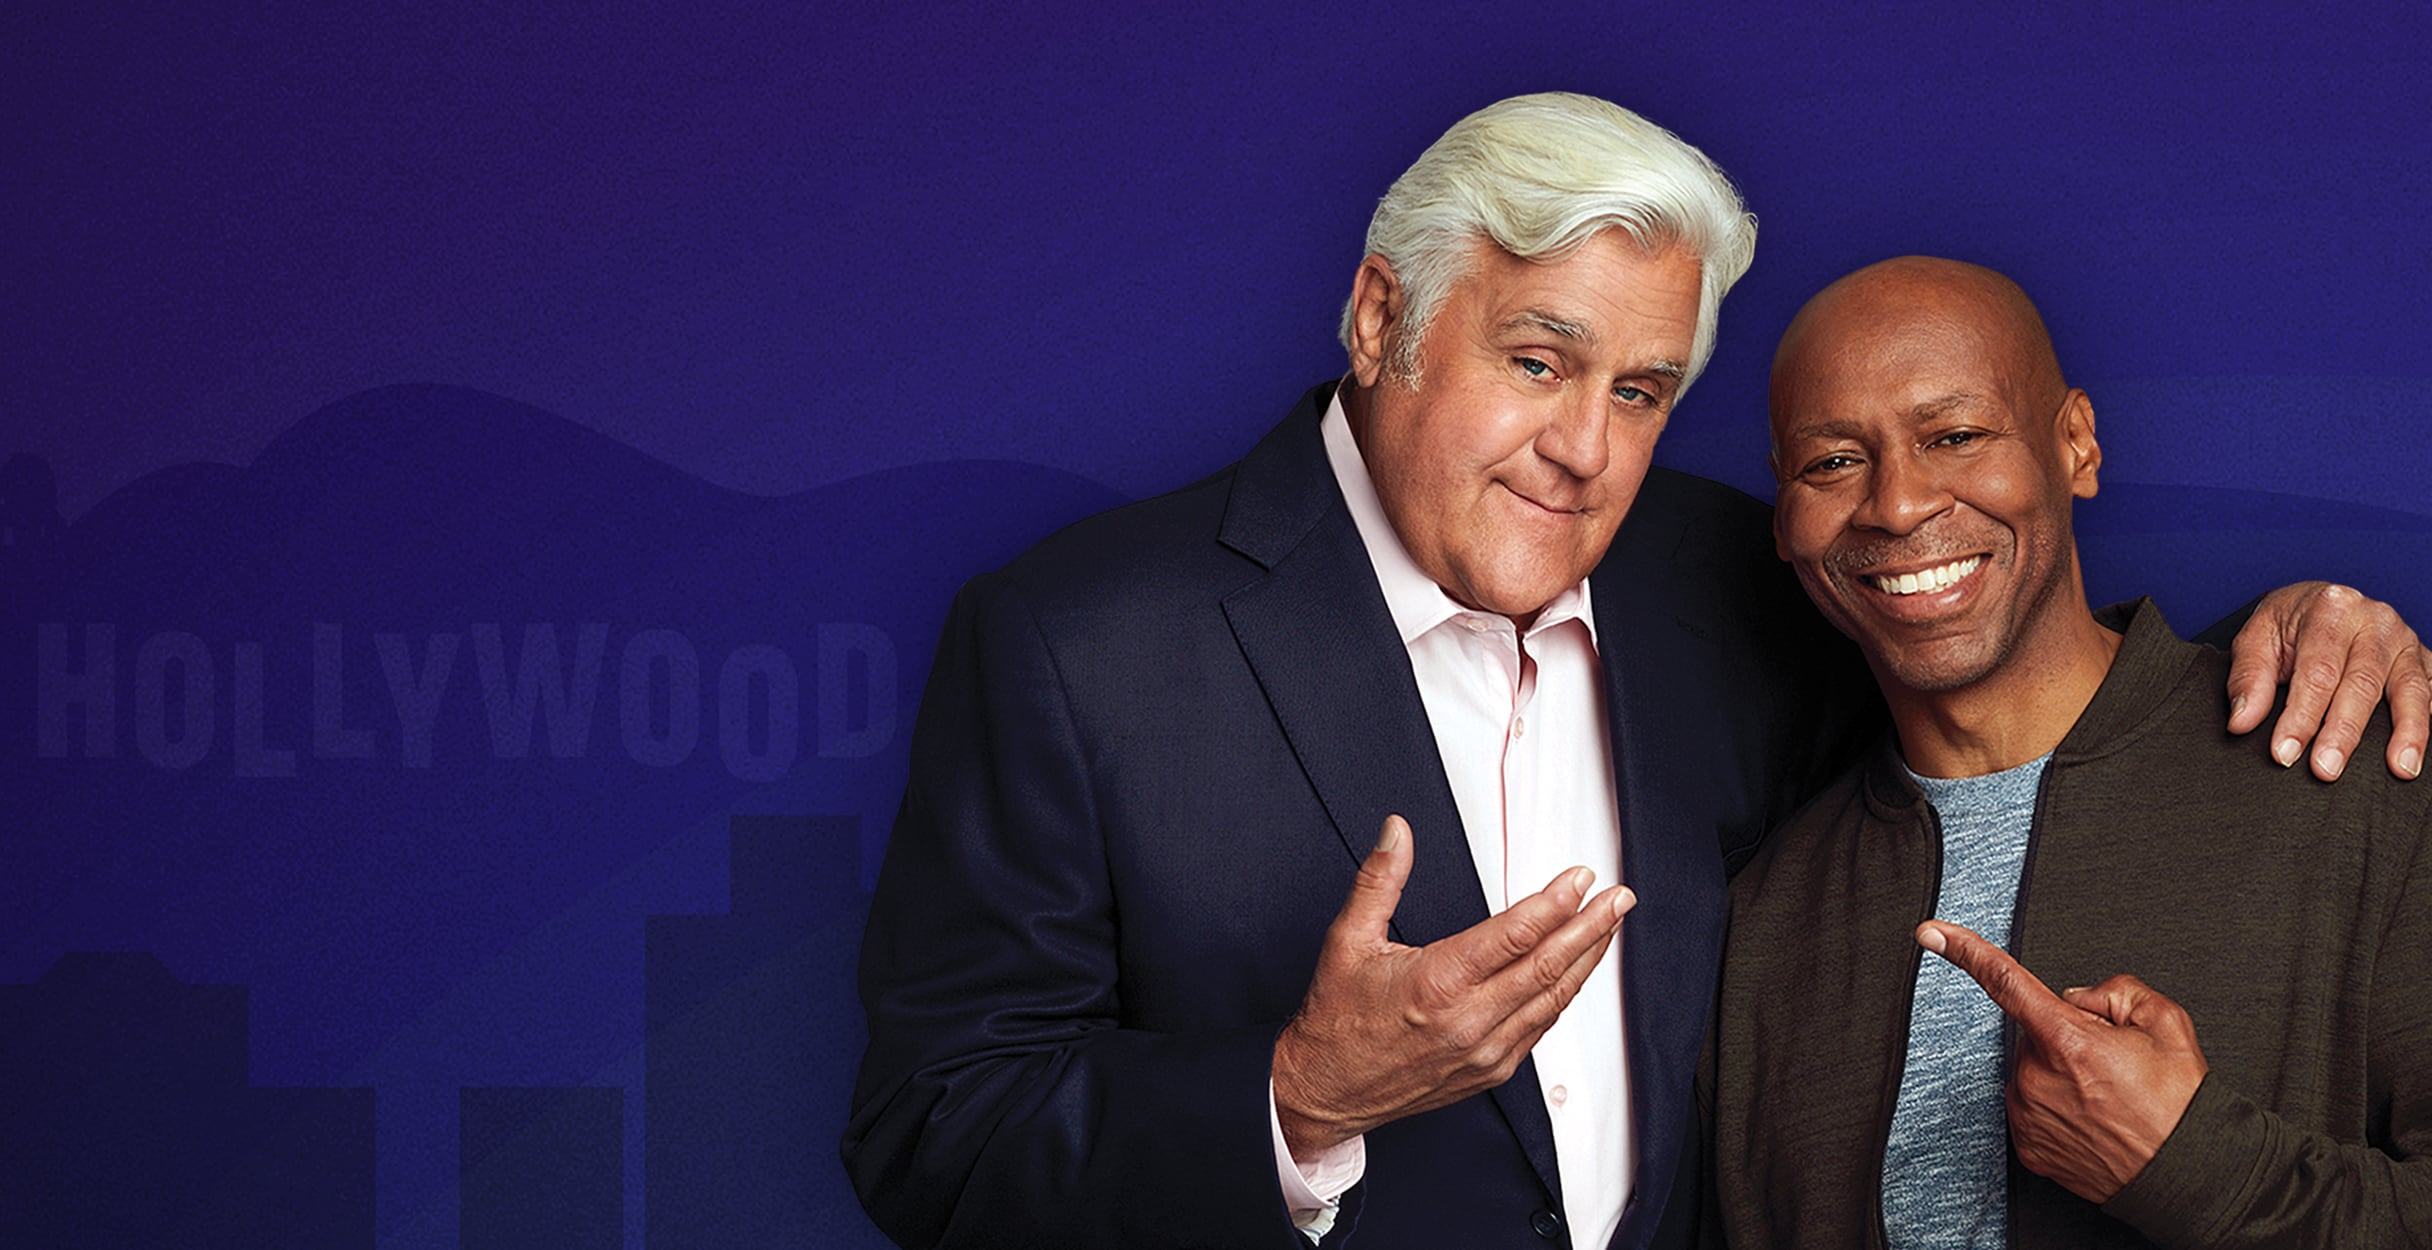 You Bet Your Life With Jay Leno Special seriesDetail